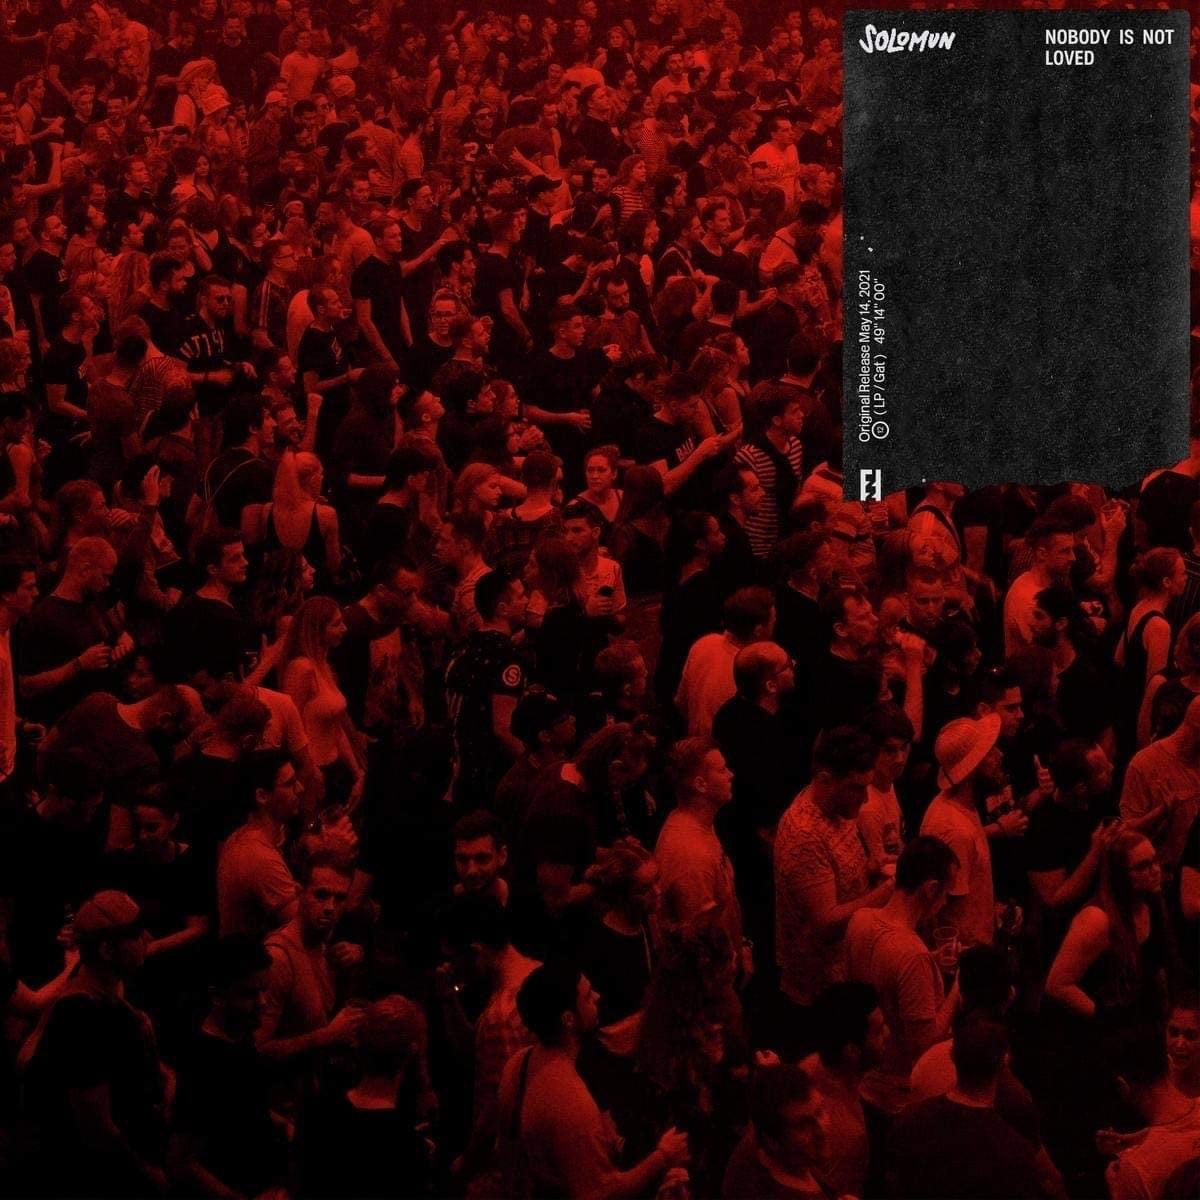 Electro News @ – Solomun feat. Tom Smith – Nobody Is Not Loved